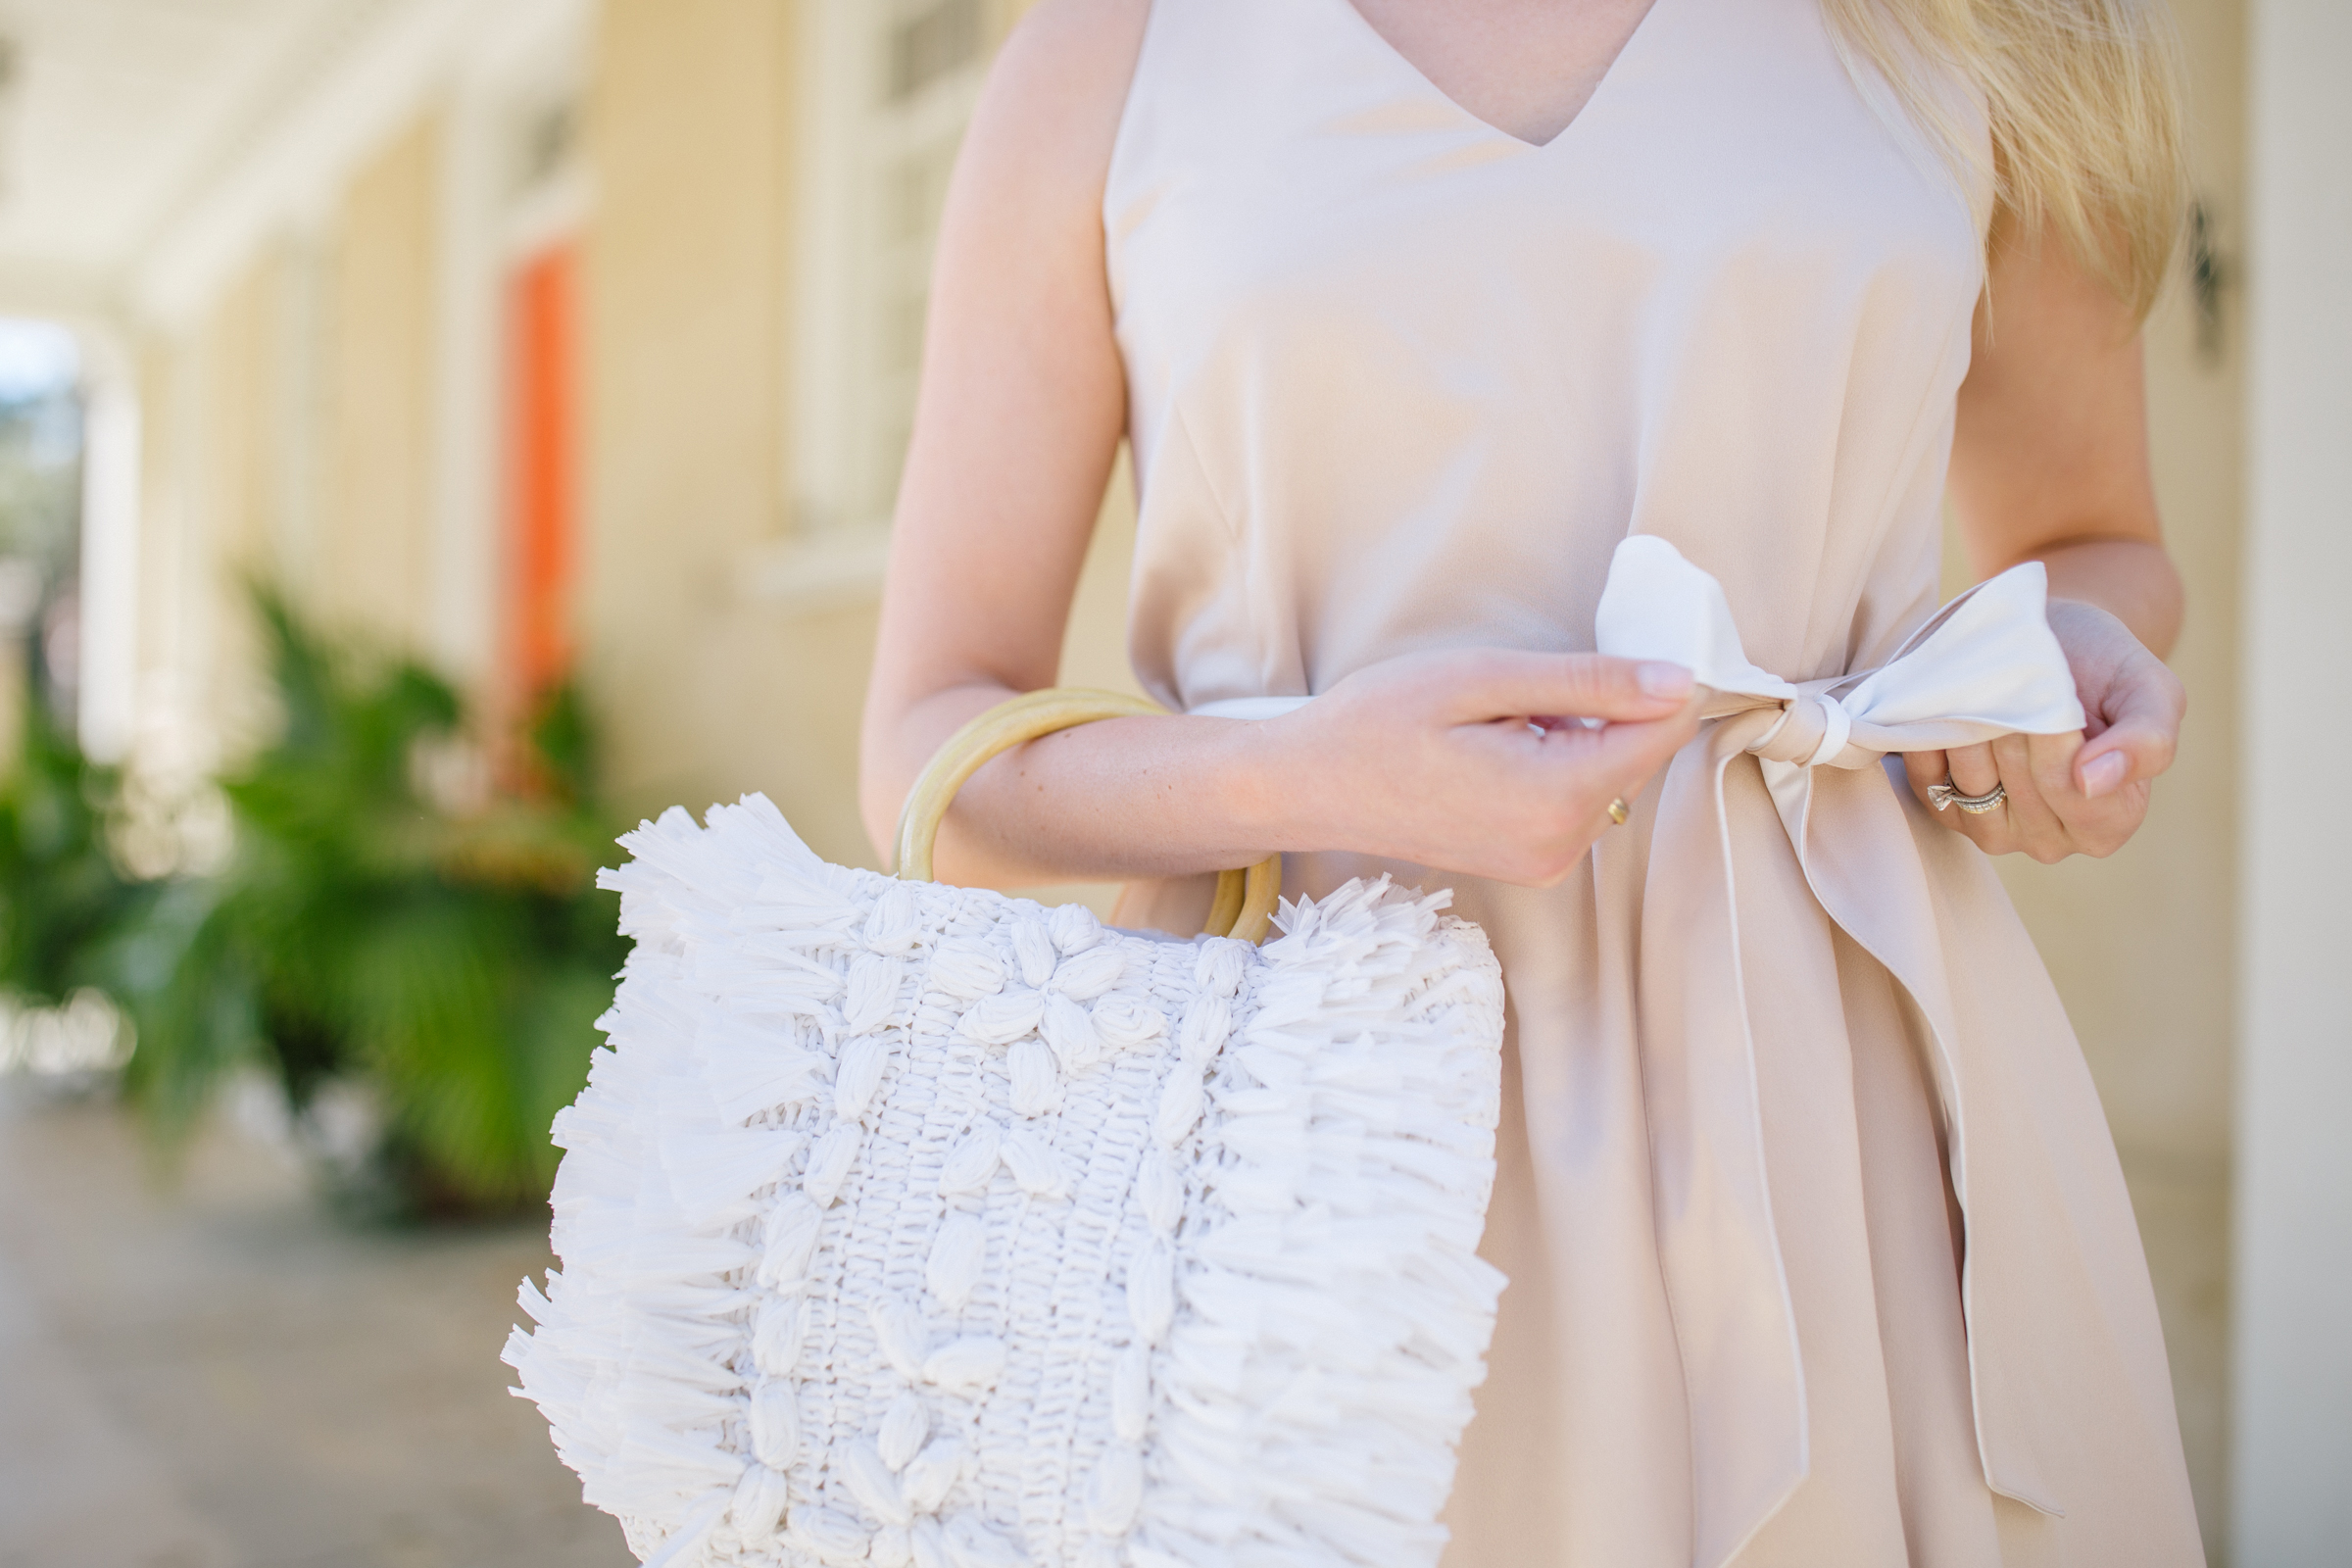 The #1 best white straw purse to carry for spring and summer + where to shop the seasons IT white straw purses | Rhyme & Reason